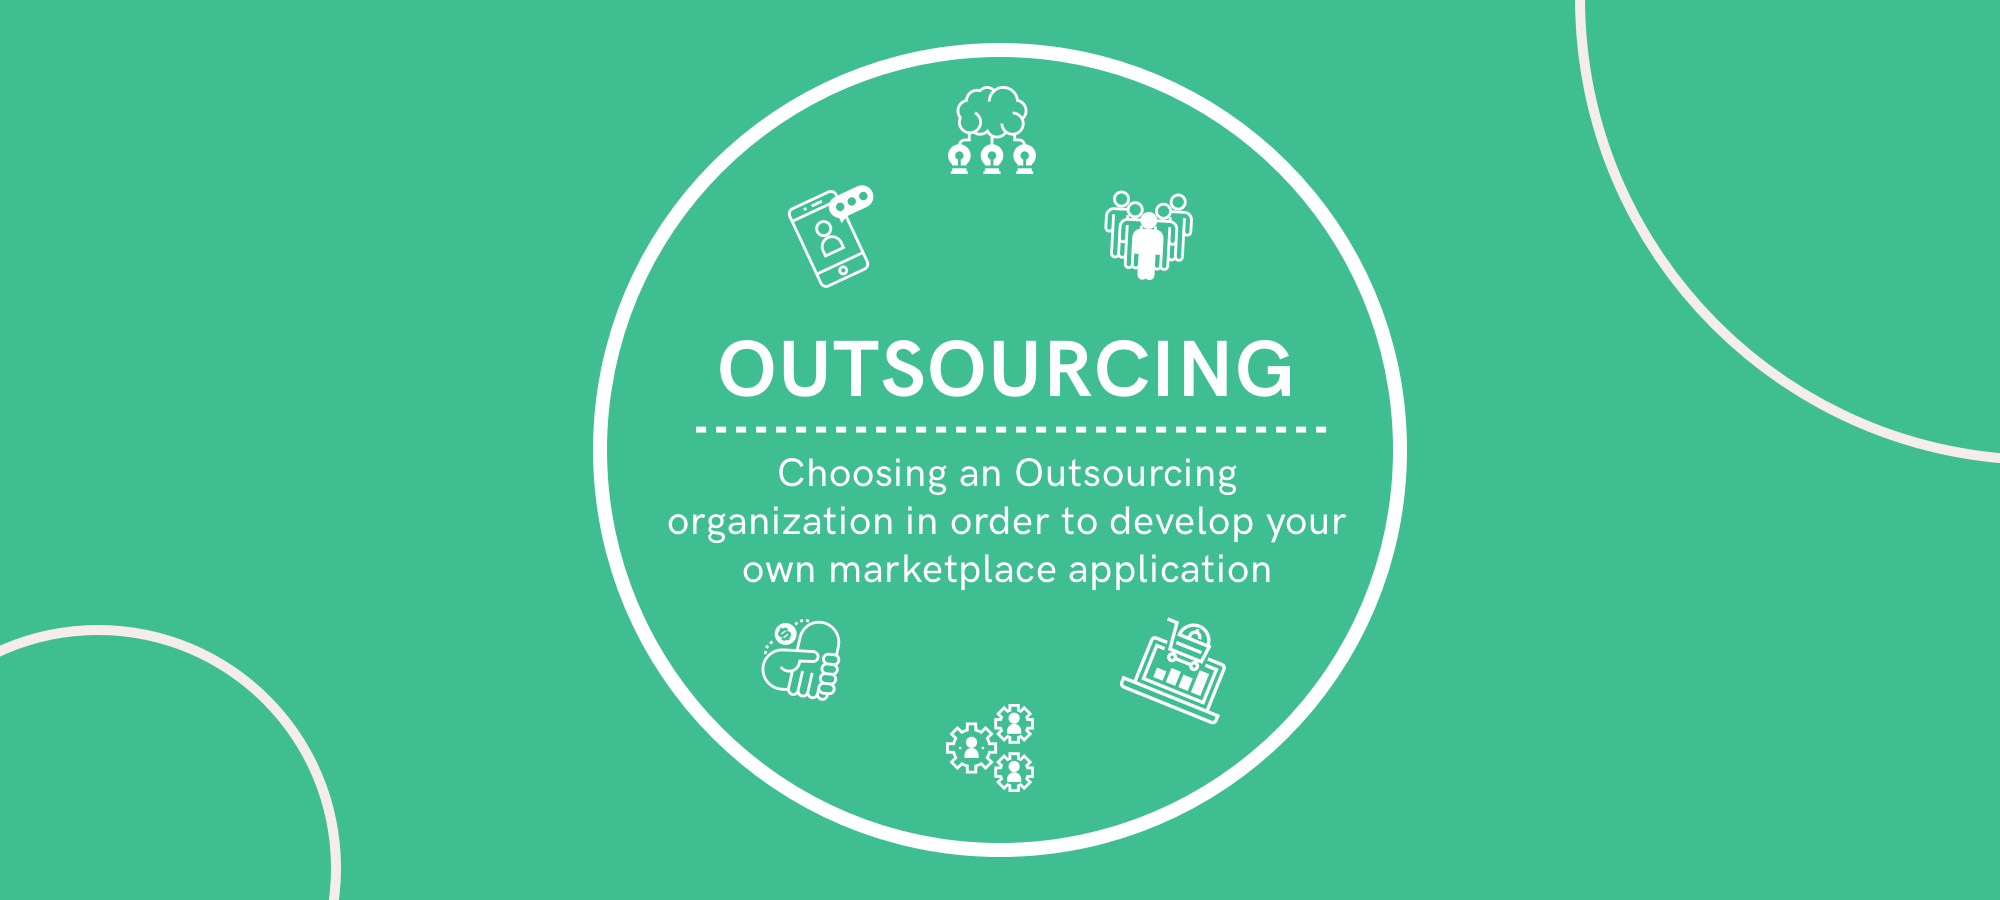 Your Choice of Outsourcing Organization in Order to Develop Your Own Marketplace Application